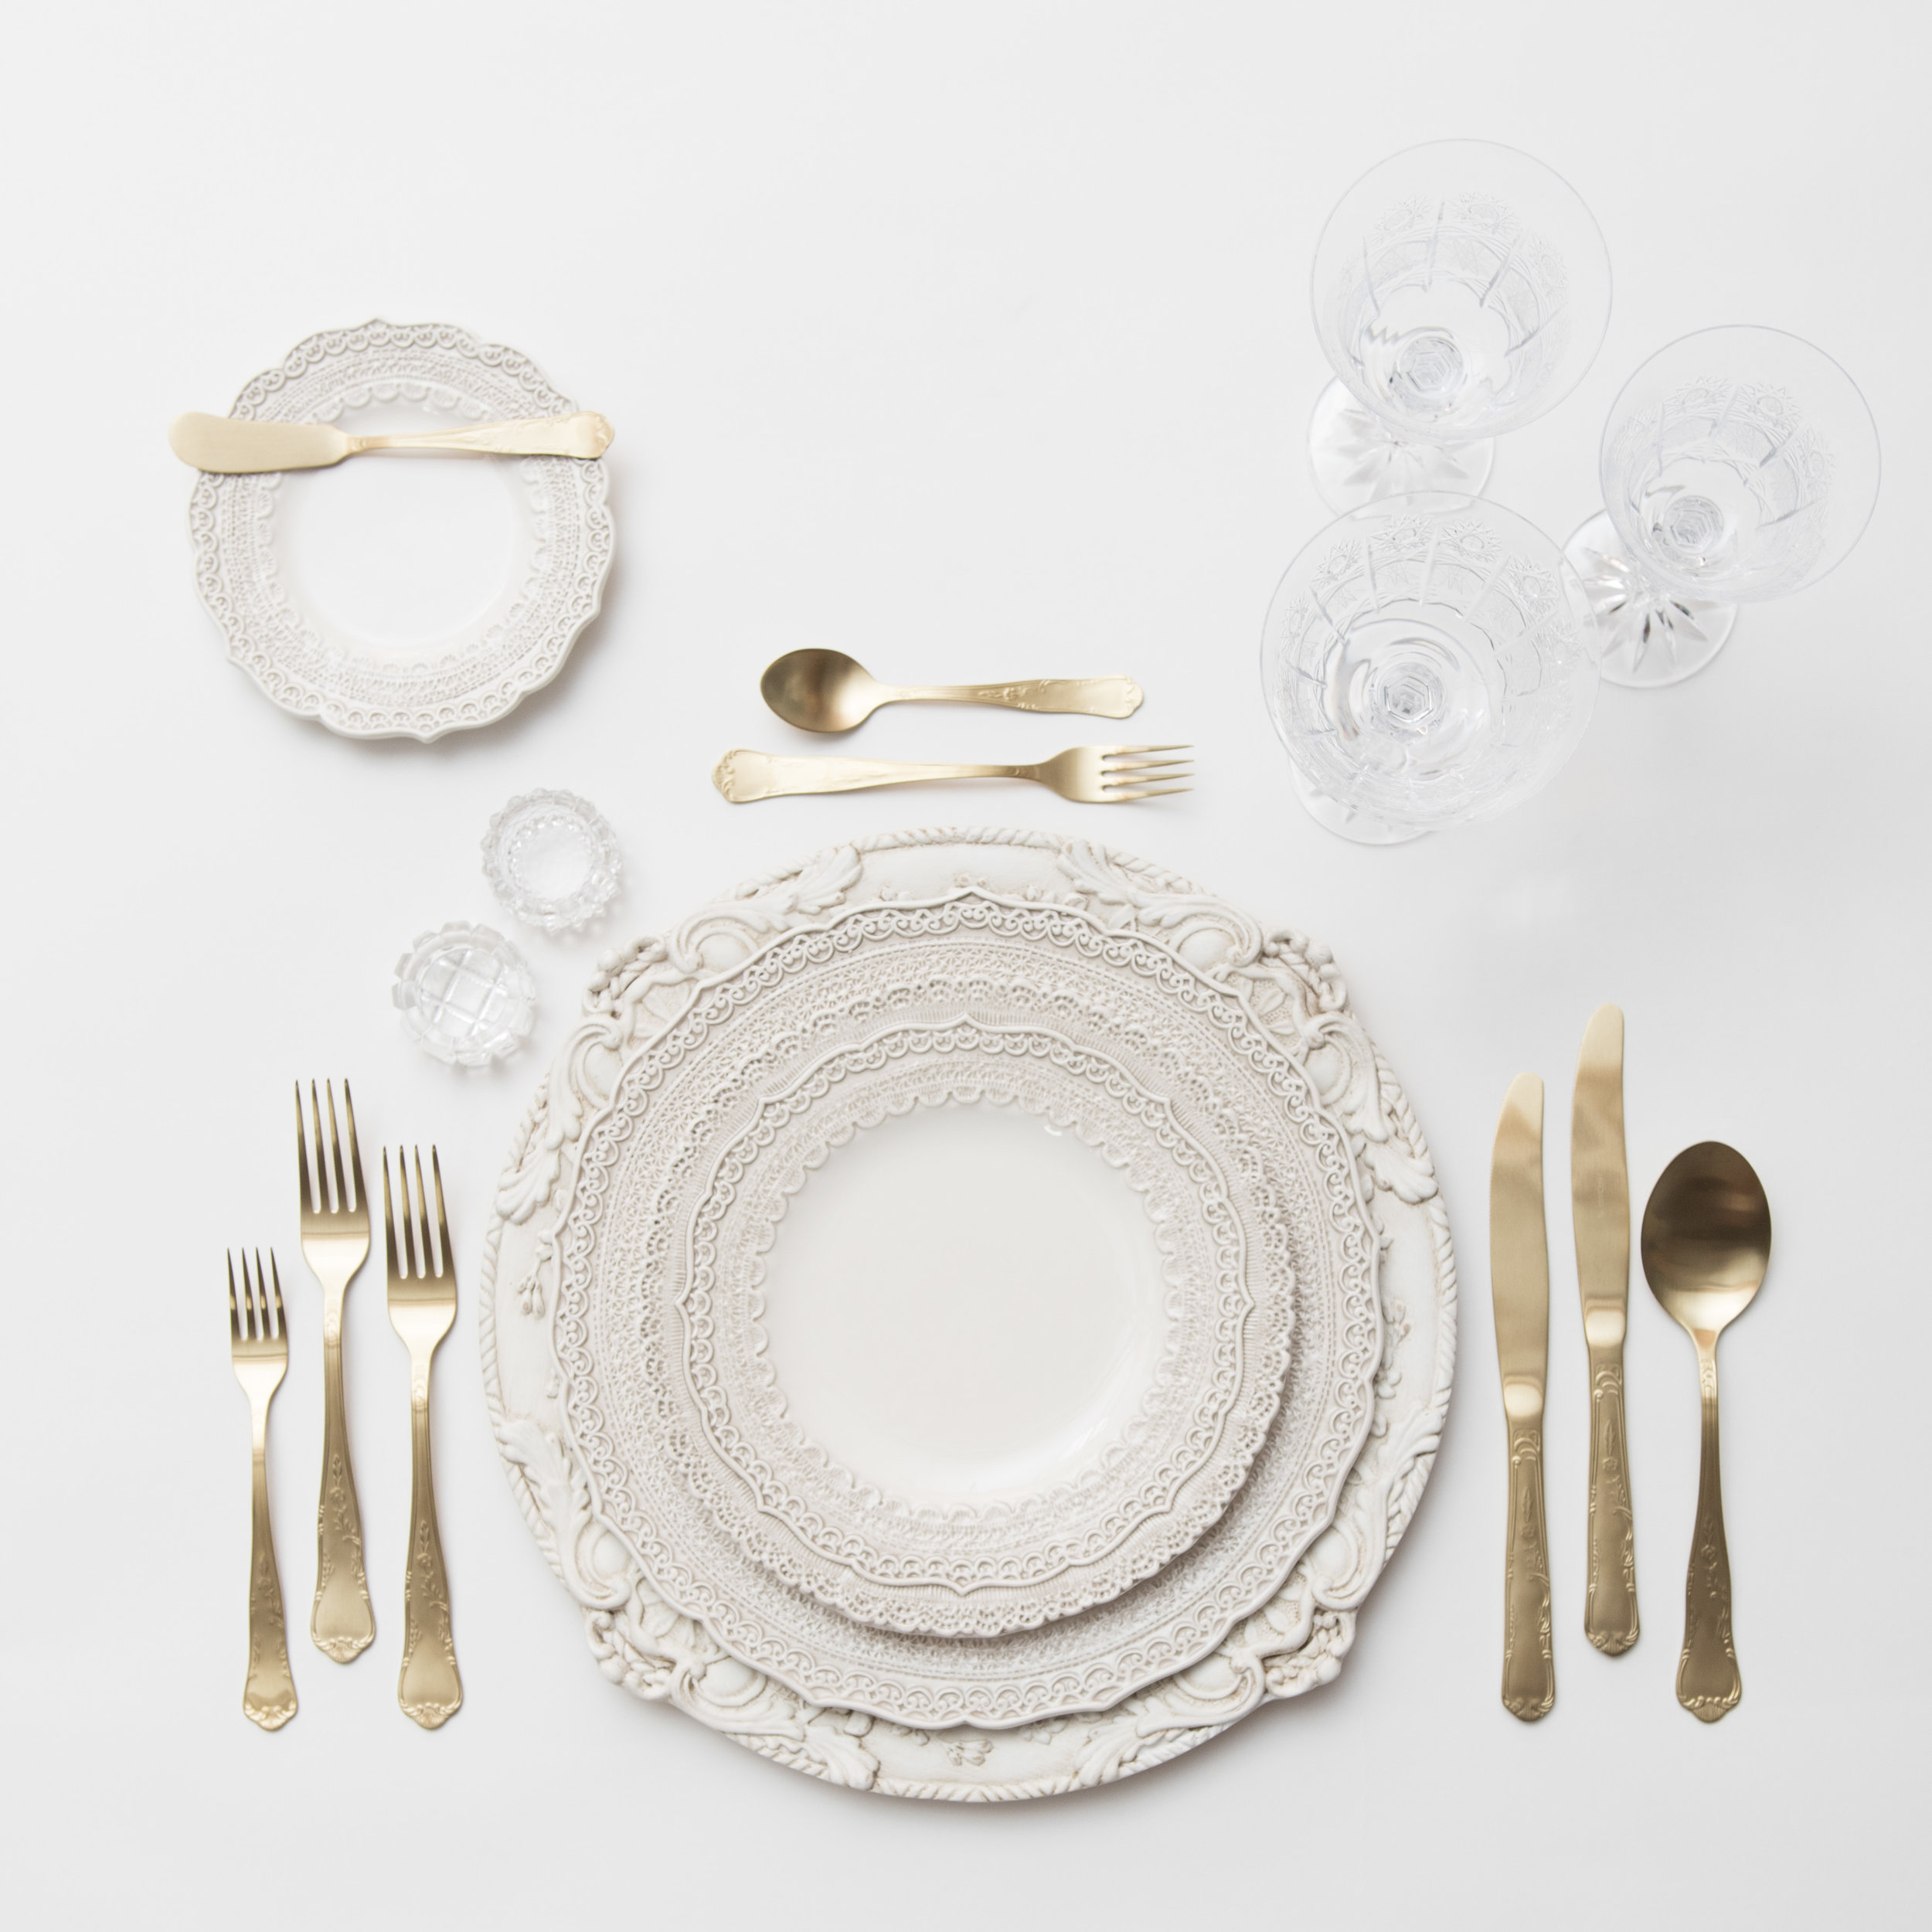 RENT: Verona Chargers in Antique White + Lace Dinnerware in White + Chateau Flatware in Matte Gold + Czech Crystal Stemware +Antique Crystal Salt Cellars  SHOP: Verona Chargers in Antique White